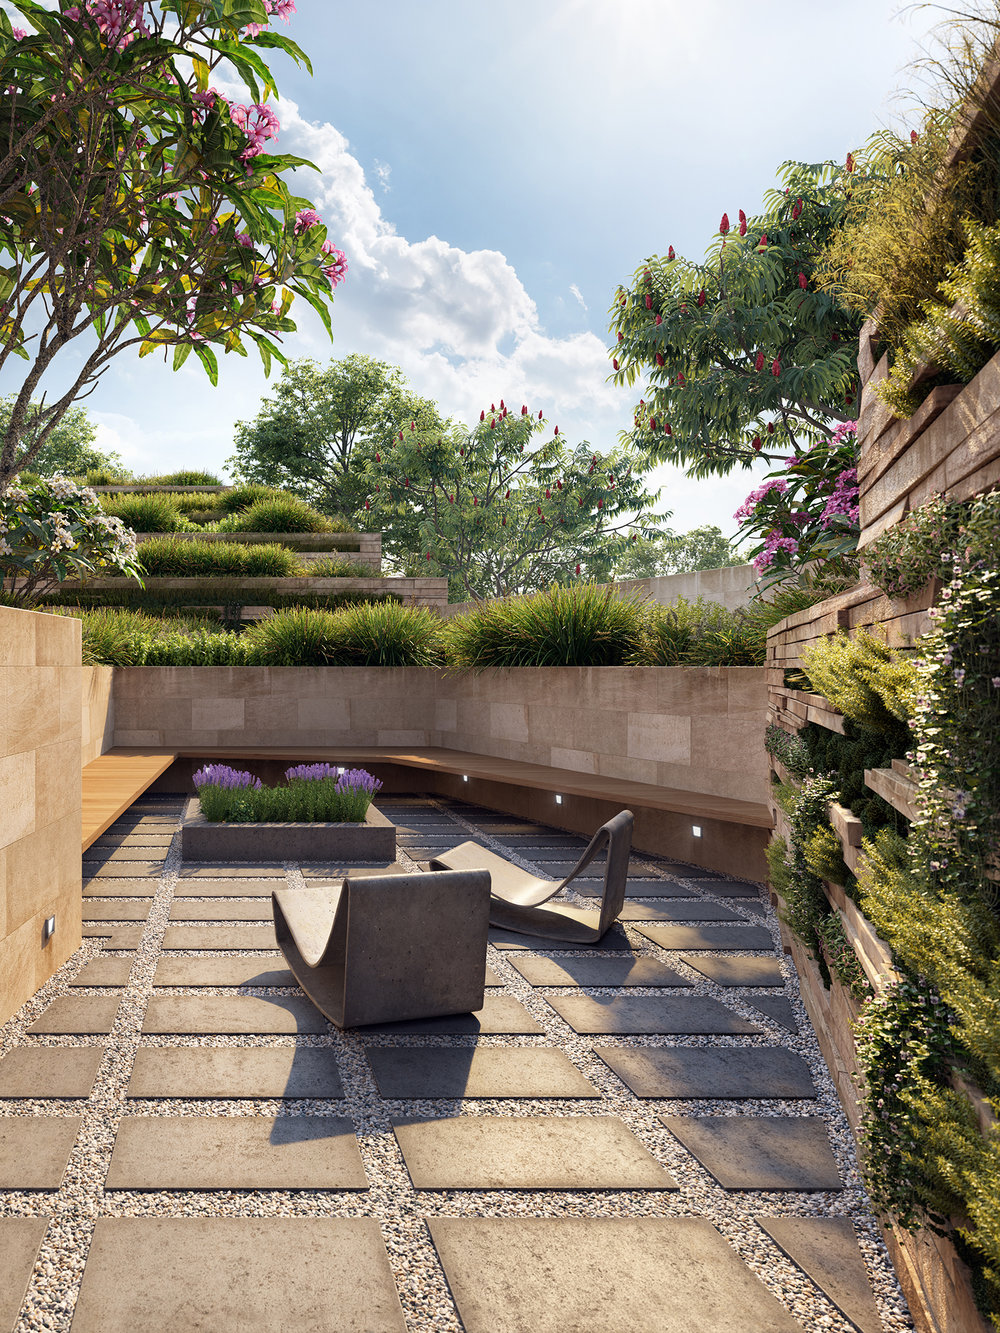 TheNoble_EXT02_Courtyard.jpg